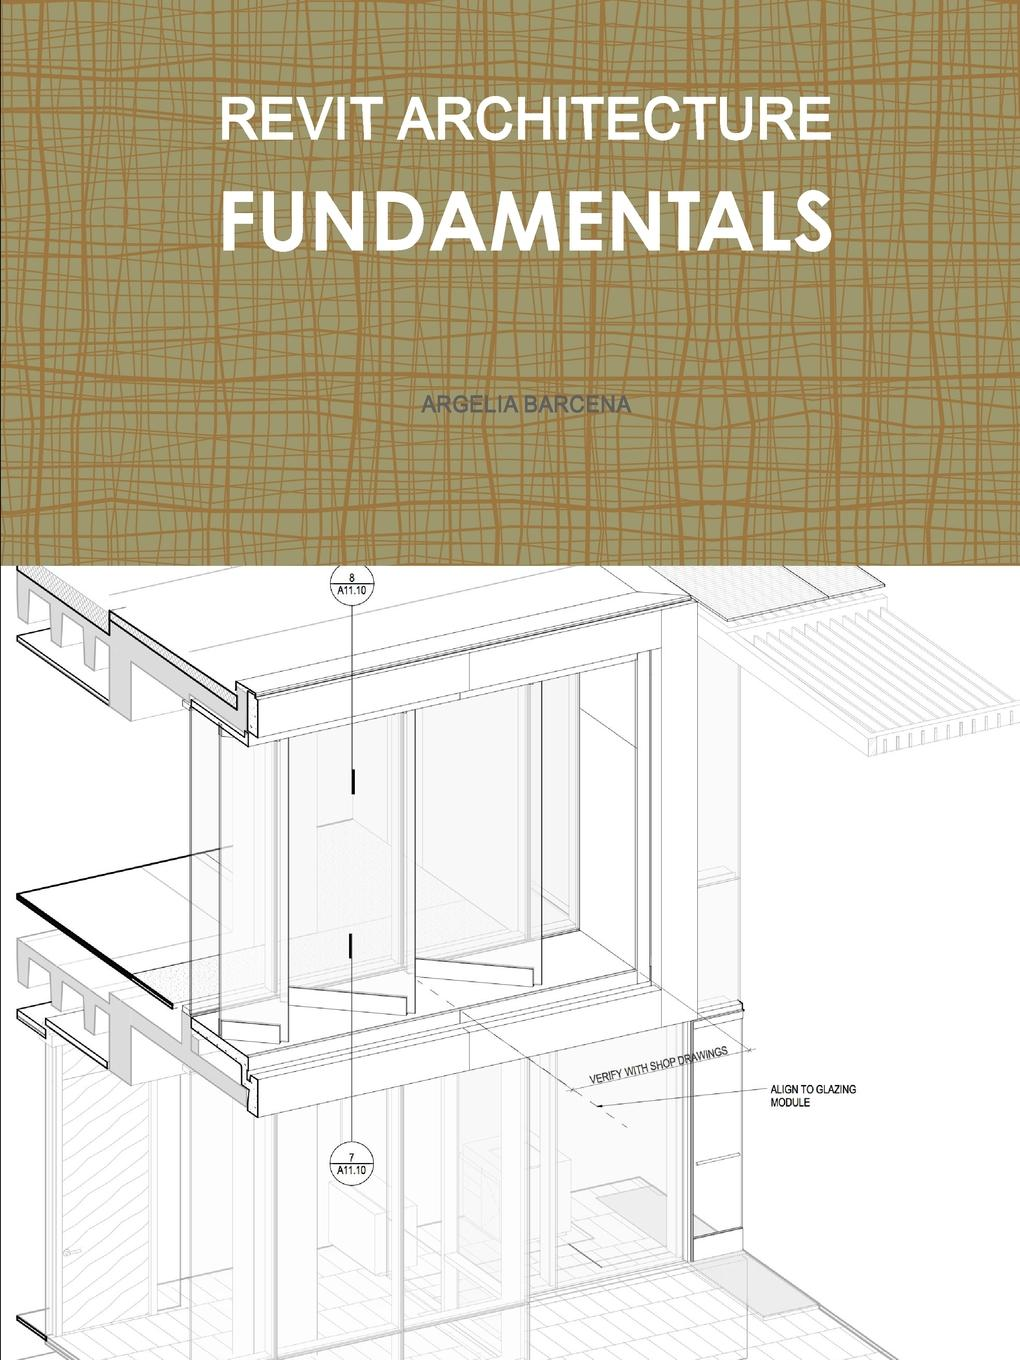 REVIT ARCHITECTURE . FUNDAMENTALS